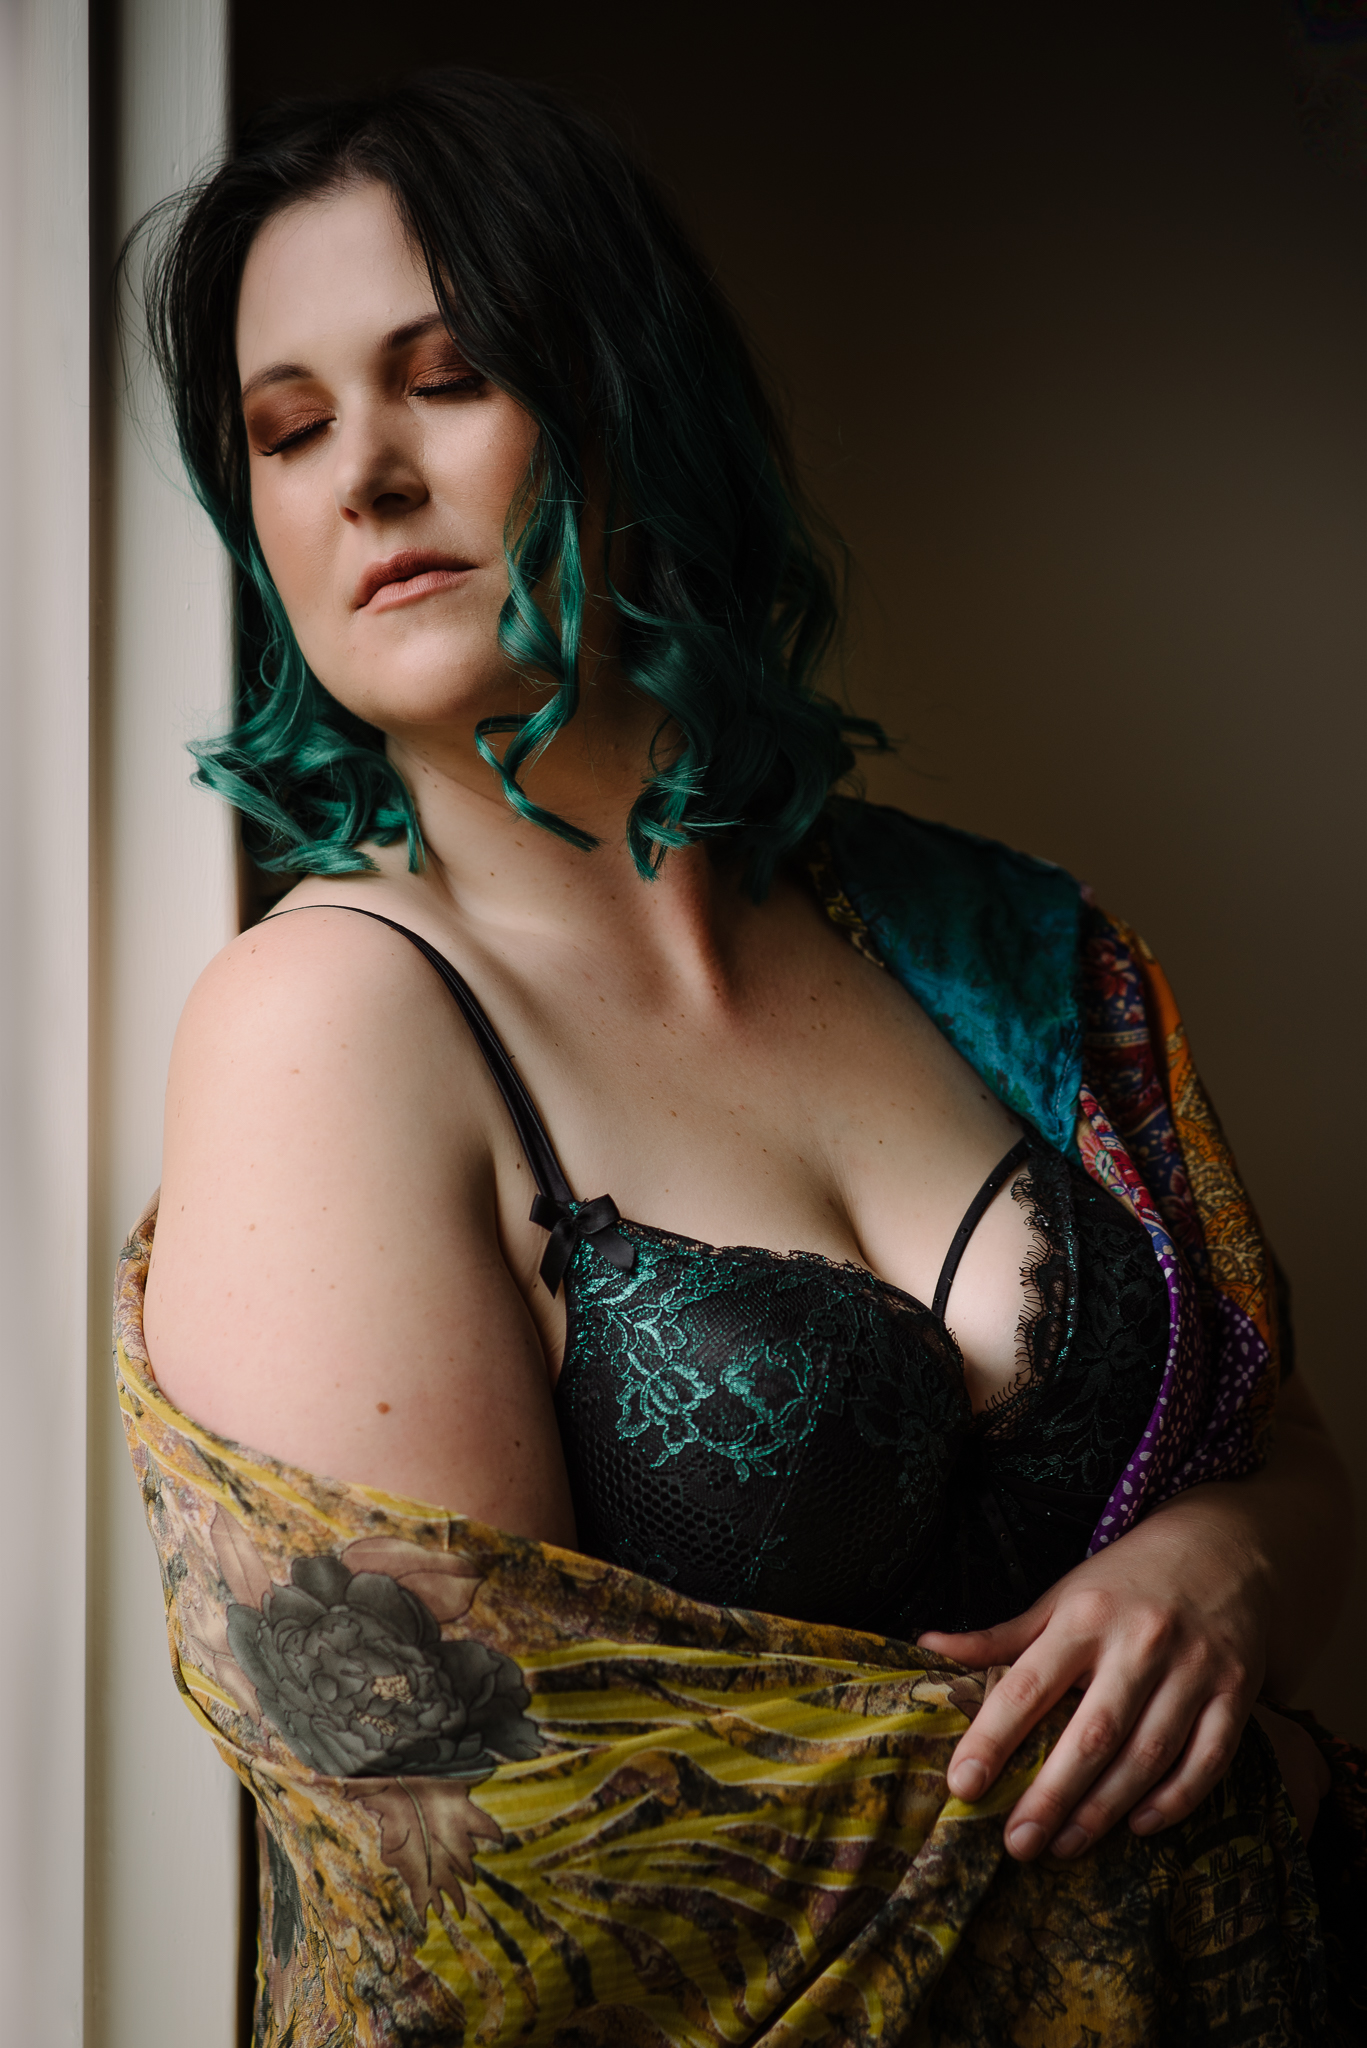 Boudoir portrait of a lady with green hair and bra, wrapped in a bright shawl